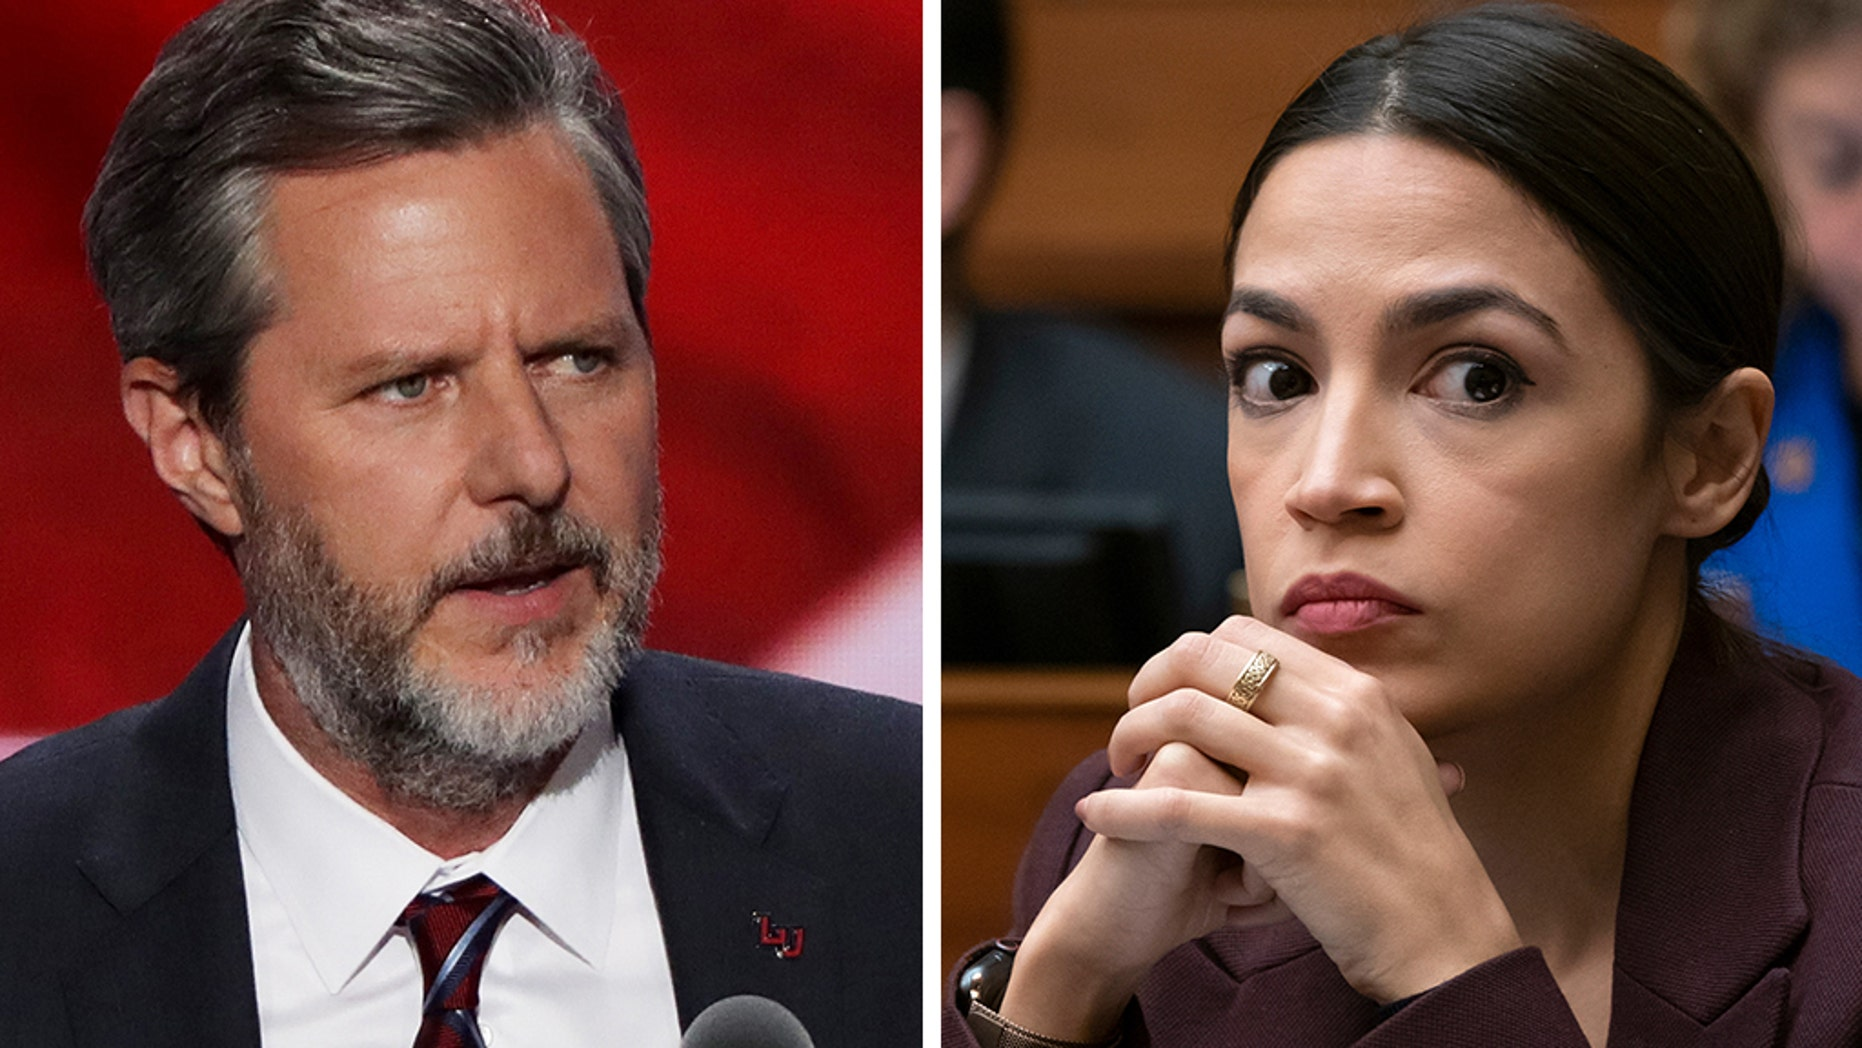 Rep. Alexandria Ocasio-Cortez, D-N.Y., sparred on Twitter Tuesday with Liberty University President Jerry Falwell Jr. concerning a few of his comments, including one made about her at CPAC over the weekend.